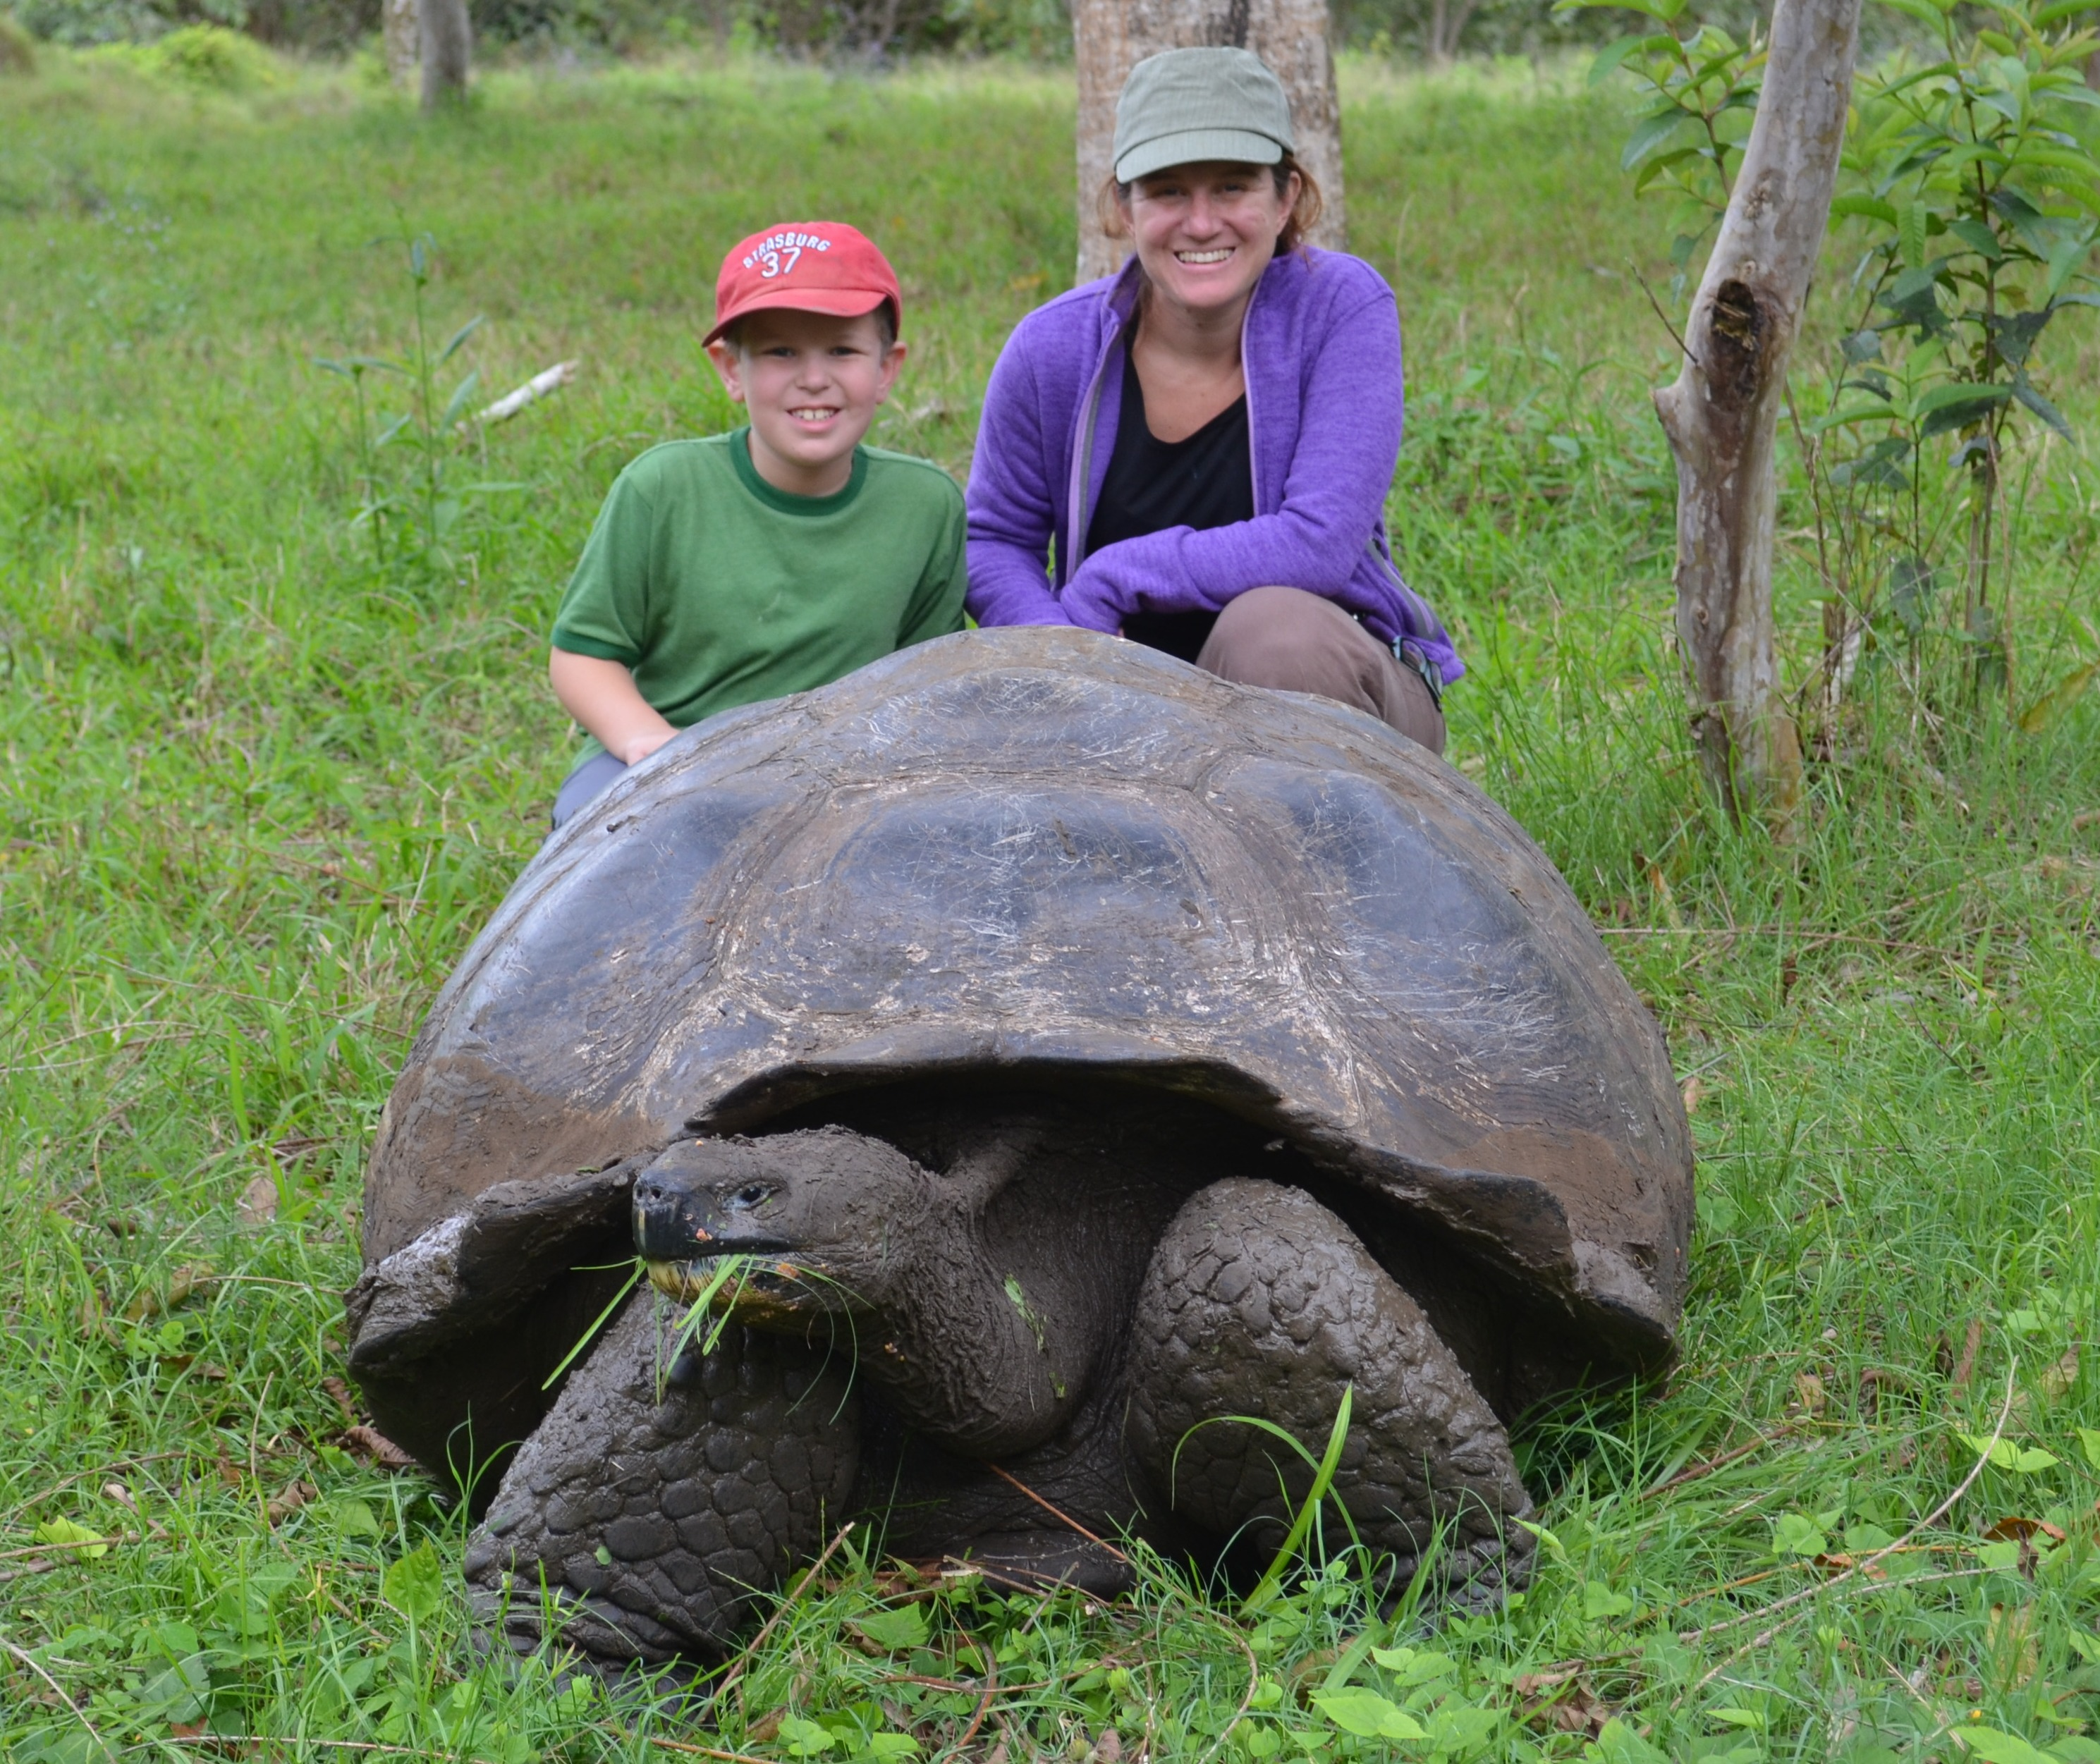 My mom and I behind a giant tortoise